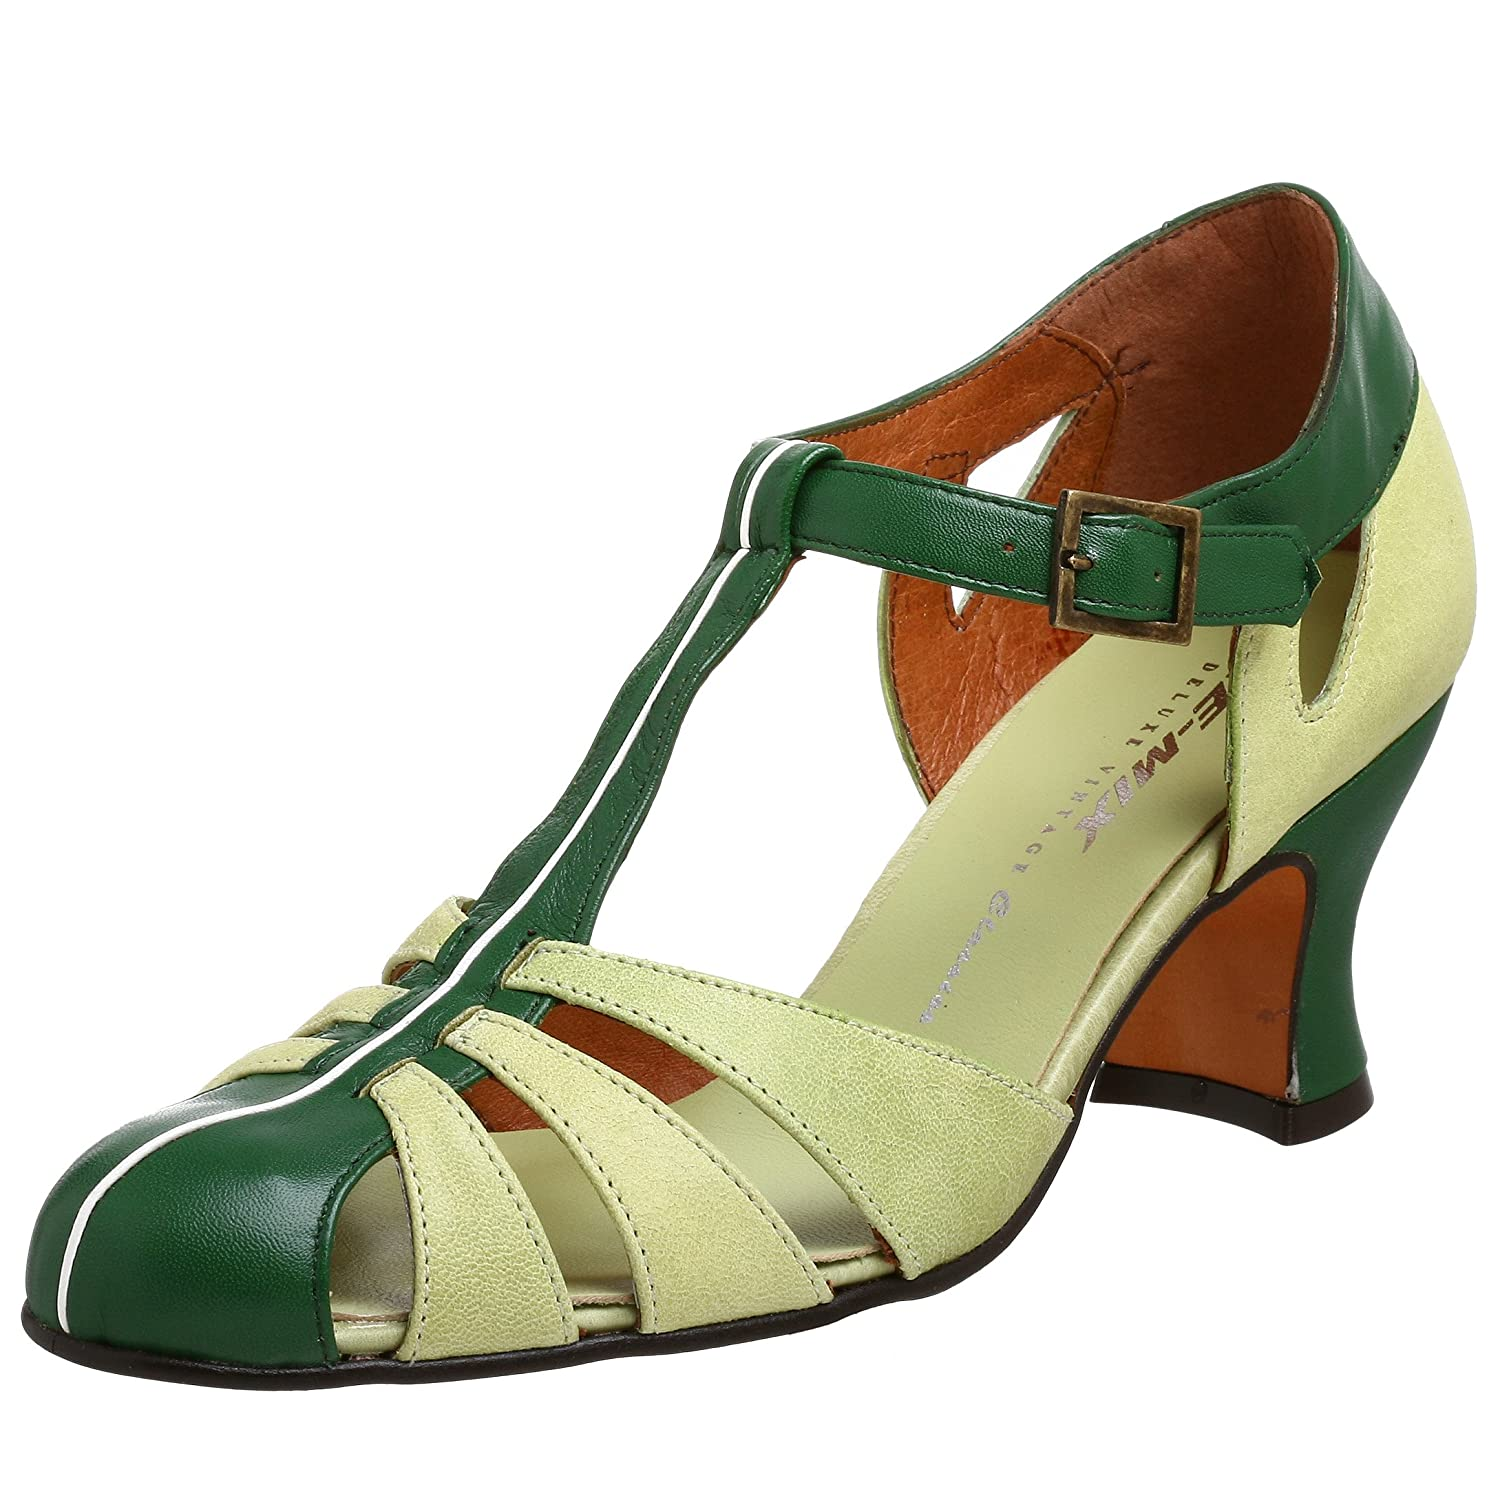 Re-Mix Vintage Balboa Sandal - Free Overnight Shipping & Return Shipping: Endless.com